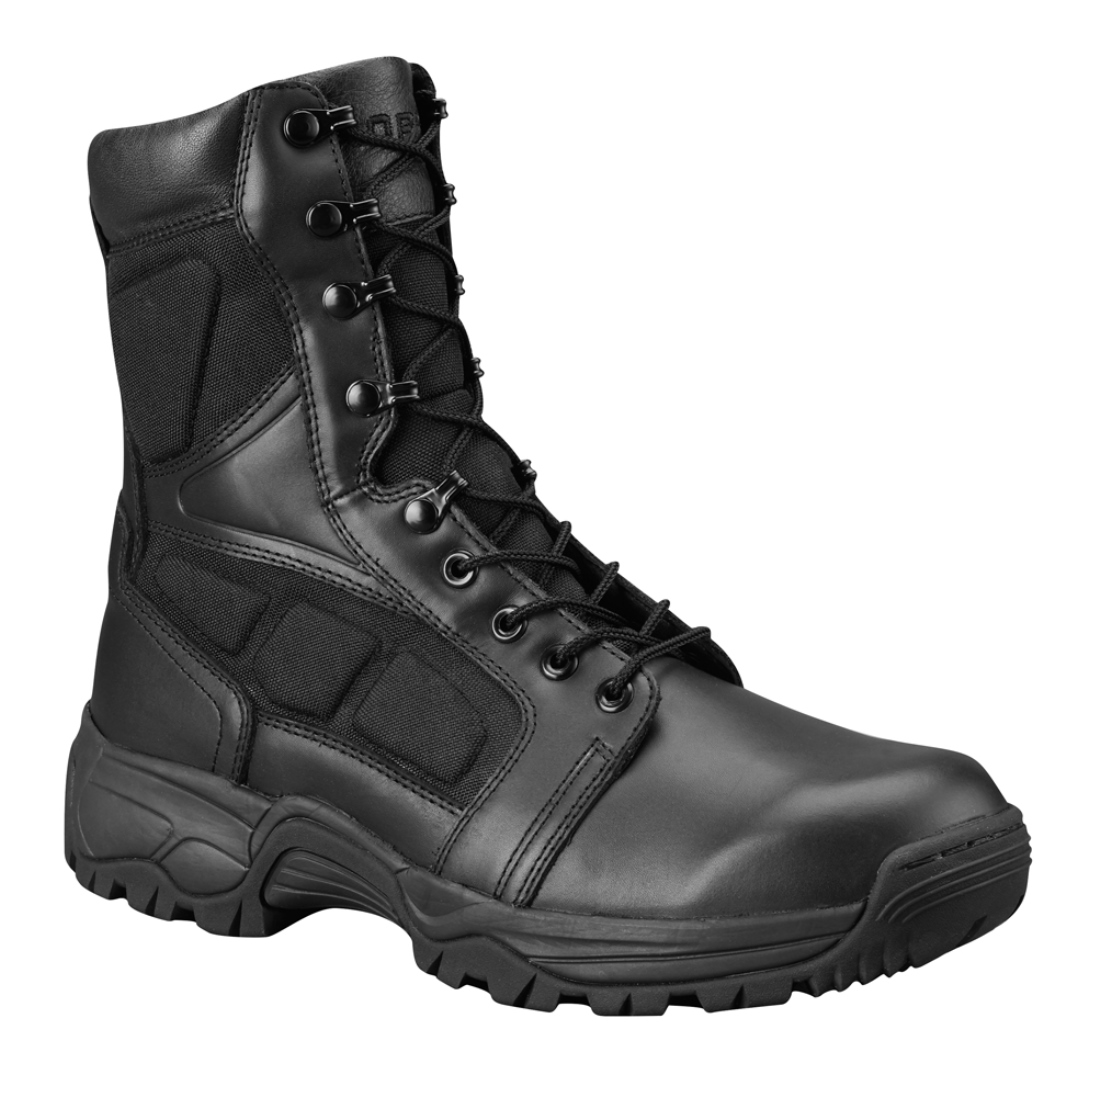 "Propper Mens Black Full Grain Leather Upper Series 200 8"" Side Zip Boots (6.5M)"